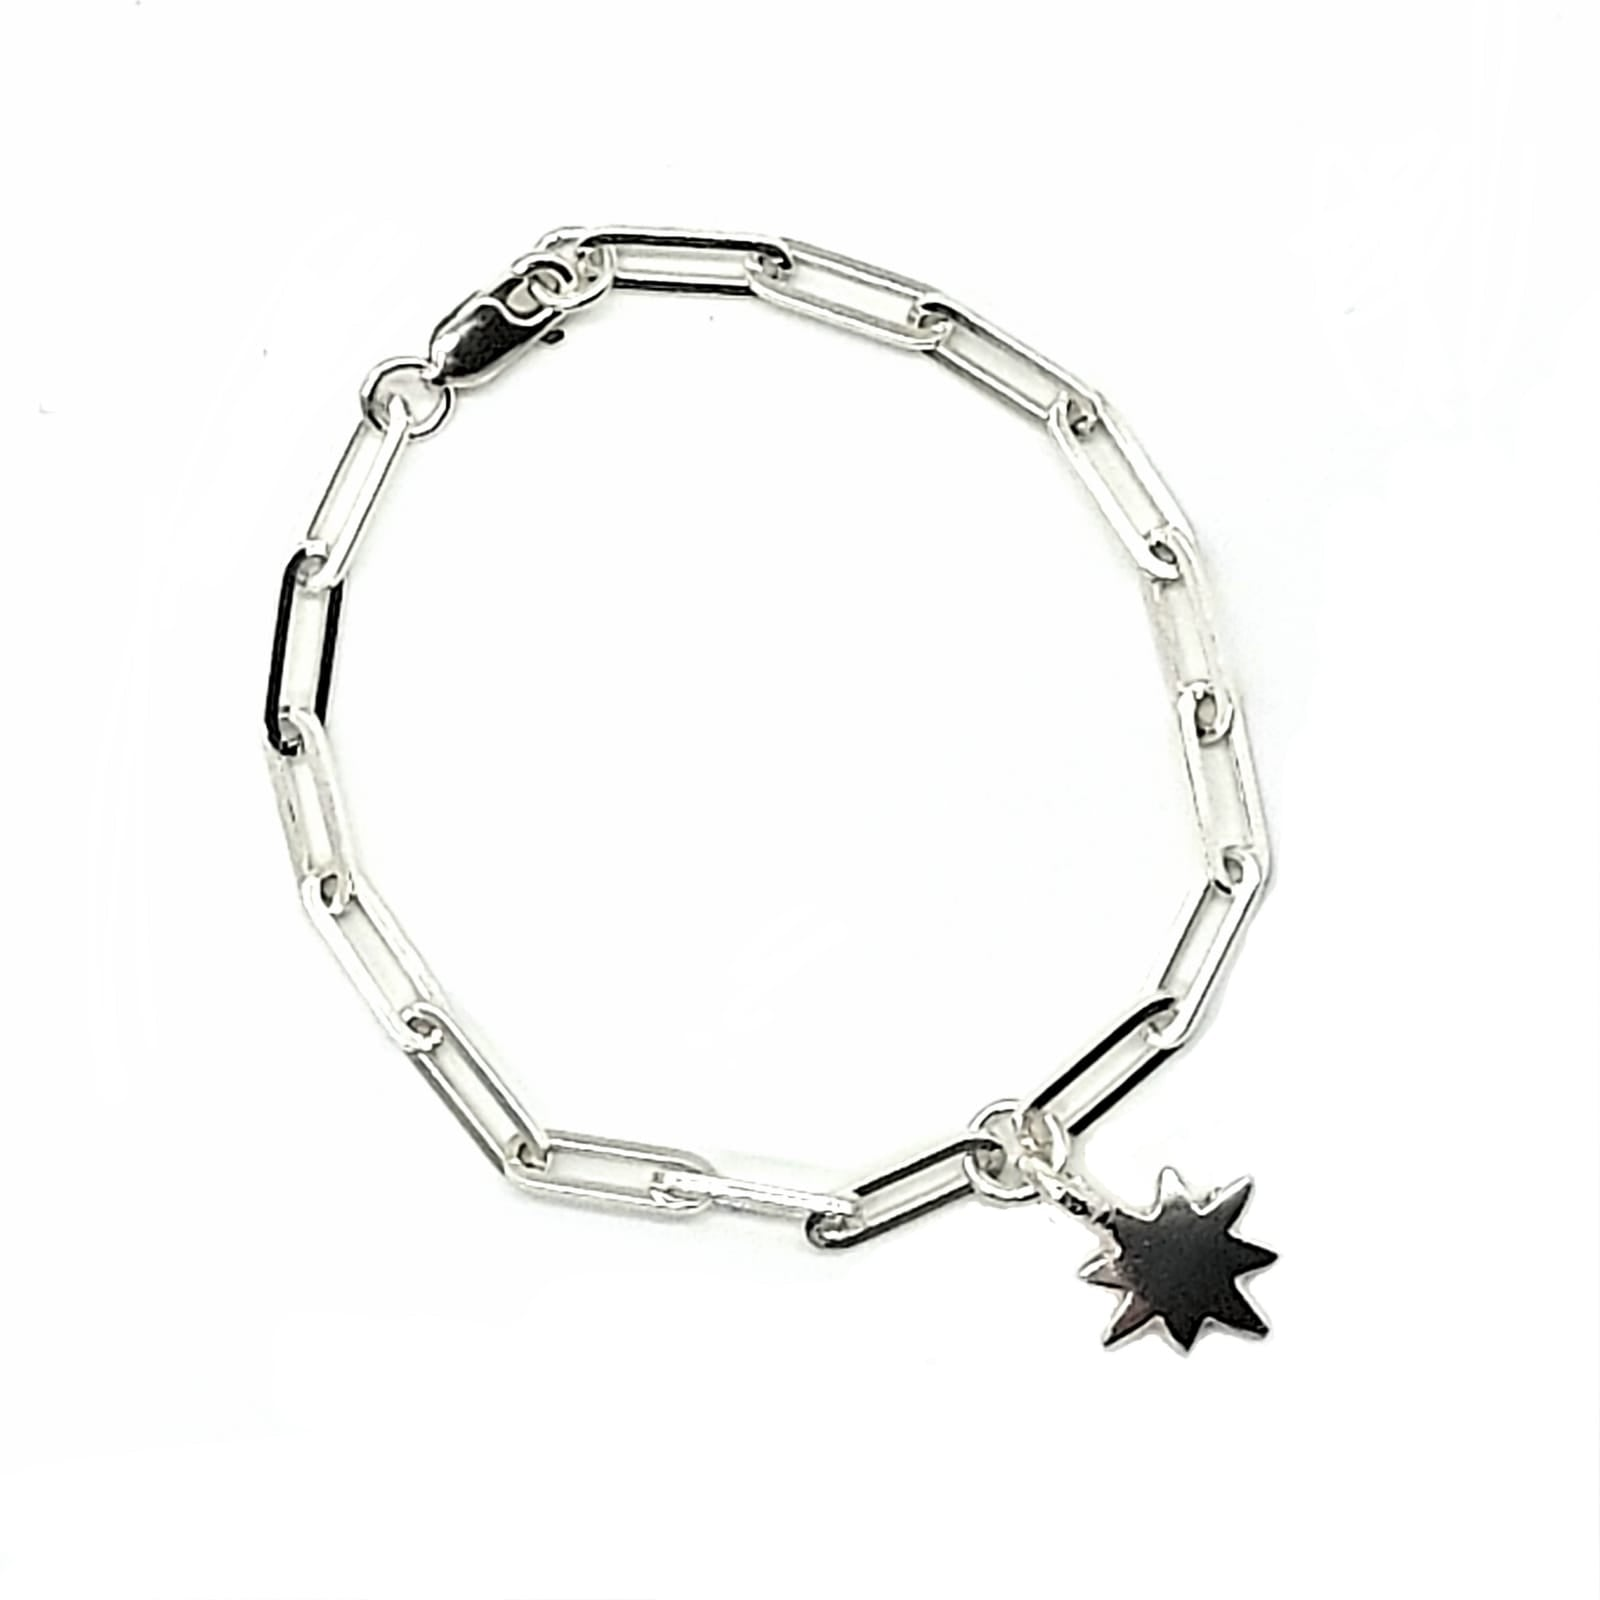 Belle & Bee silver Baby North Star trace chain bracelet